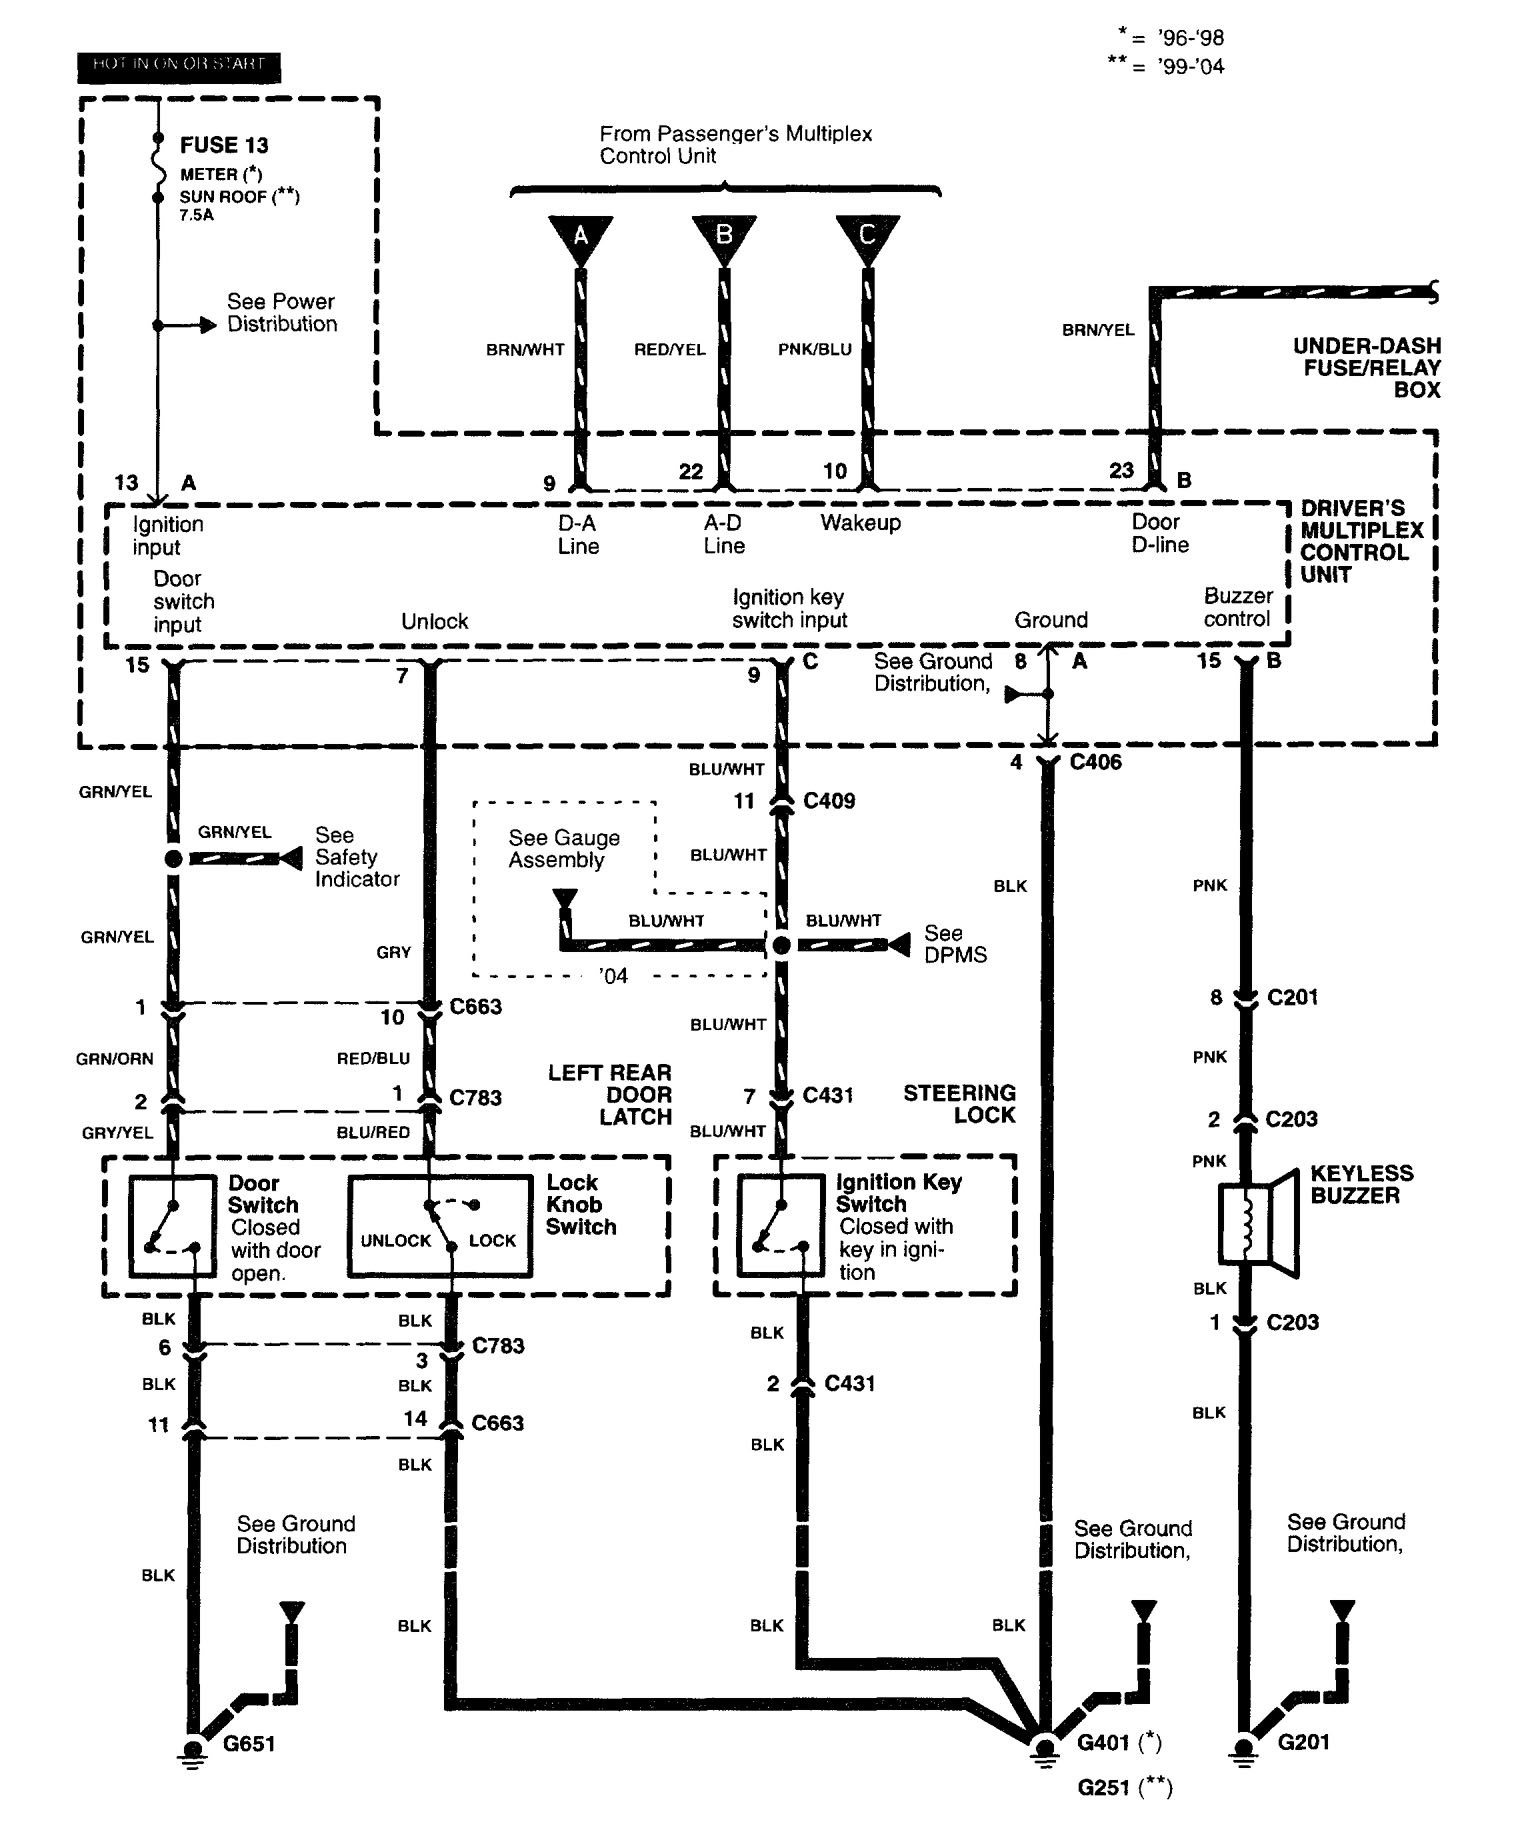 acura rl  2003 - 2004  - wiring diagrams